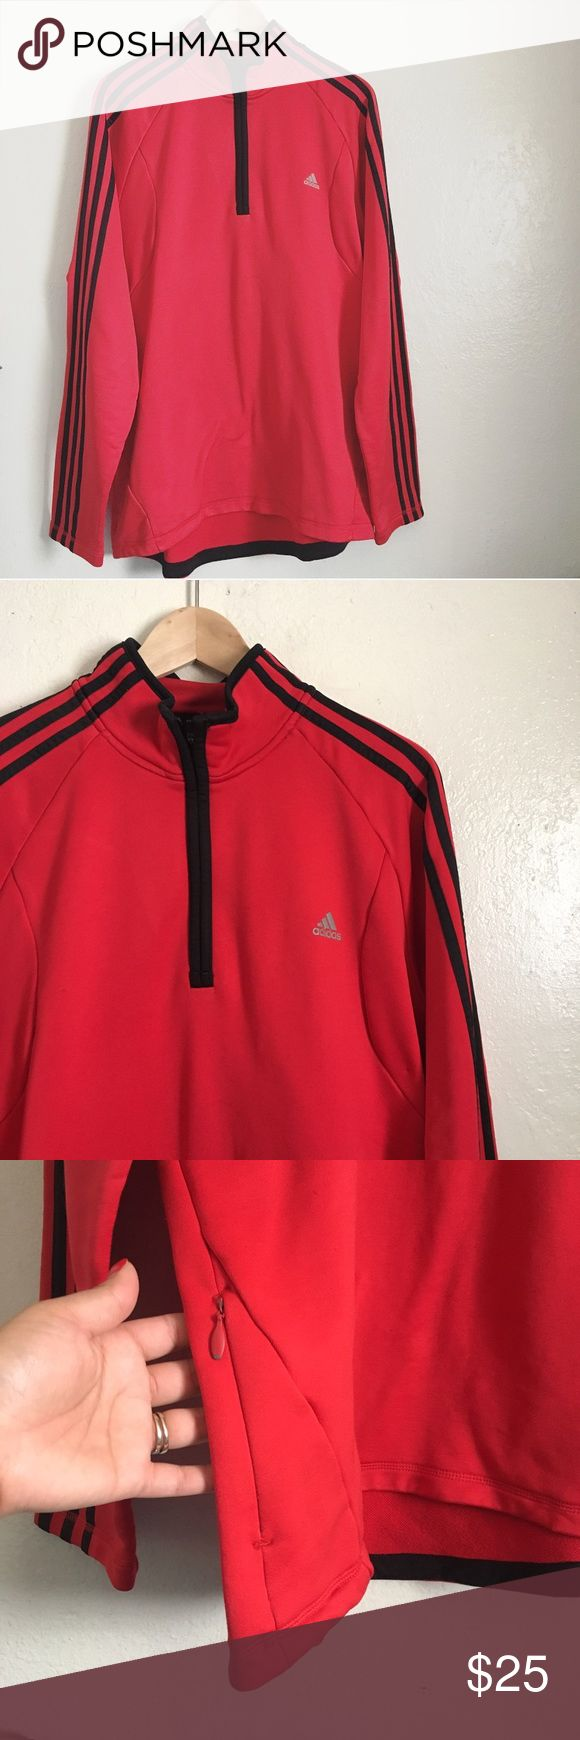 Red adidas half zip sweater. Red with black trim and stripes. Half zip sweater. One side pocket with zipper closure. Signature adidas logo on the chest. No defects or flaws. Adidas Sweaters